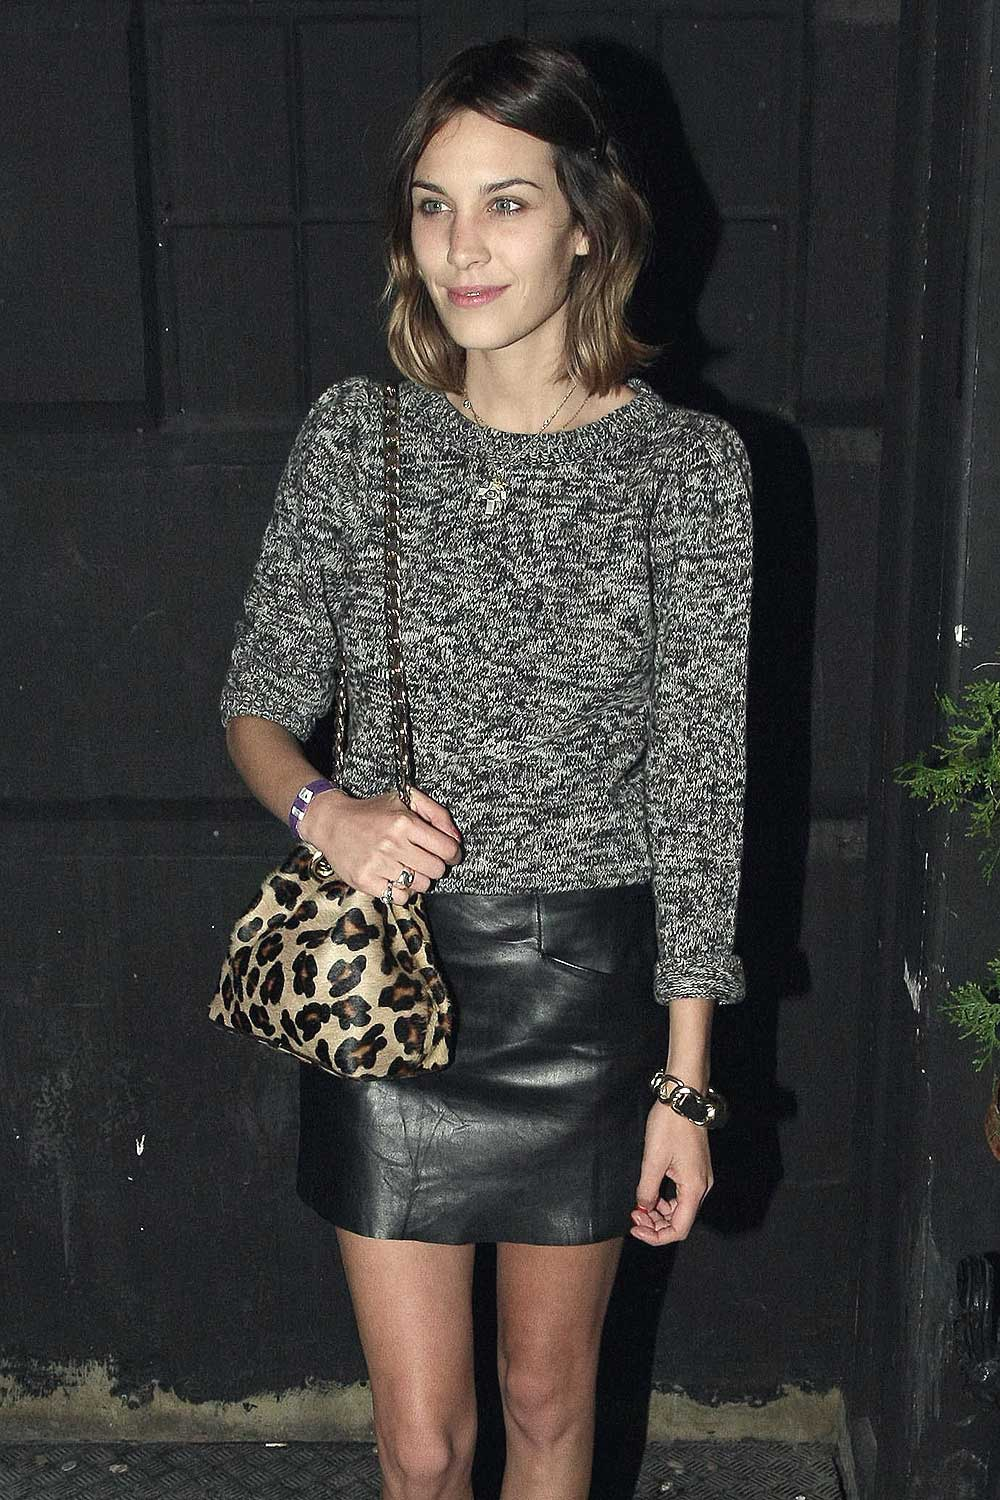 Alexa Chung at the Levi's Curve launch party